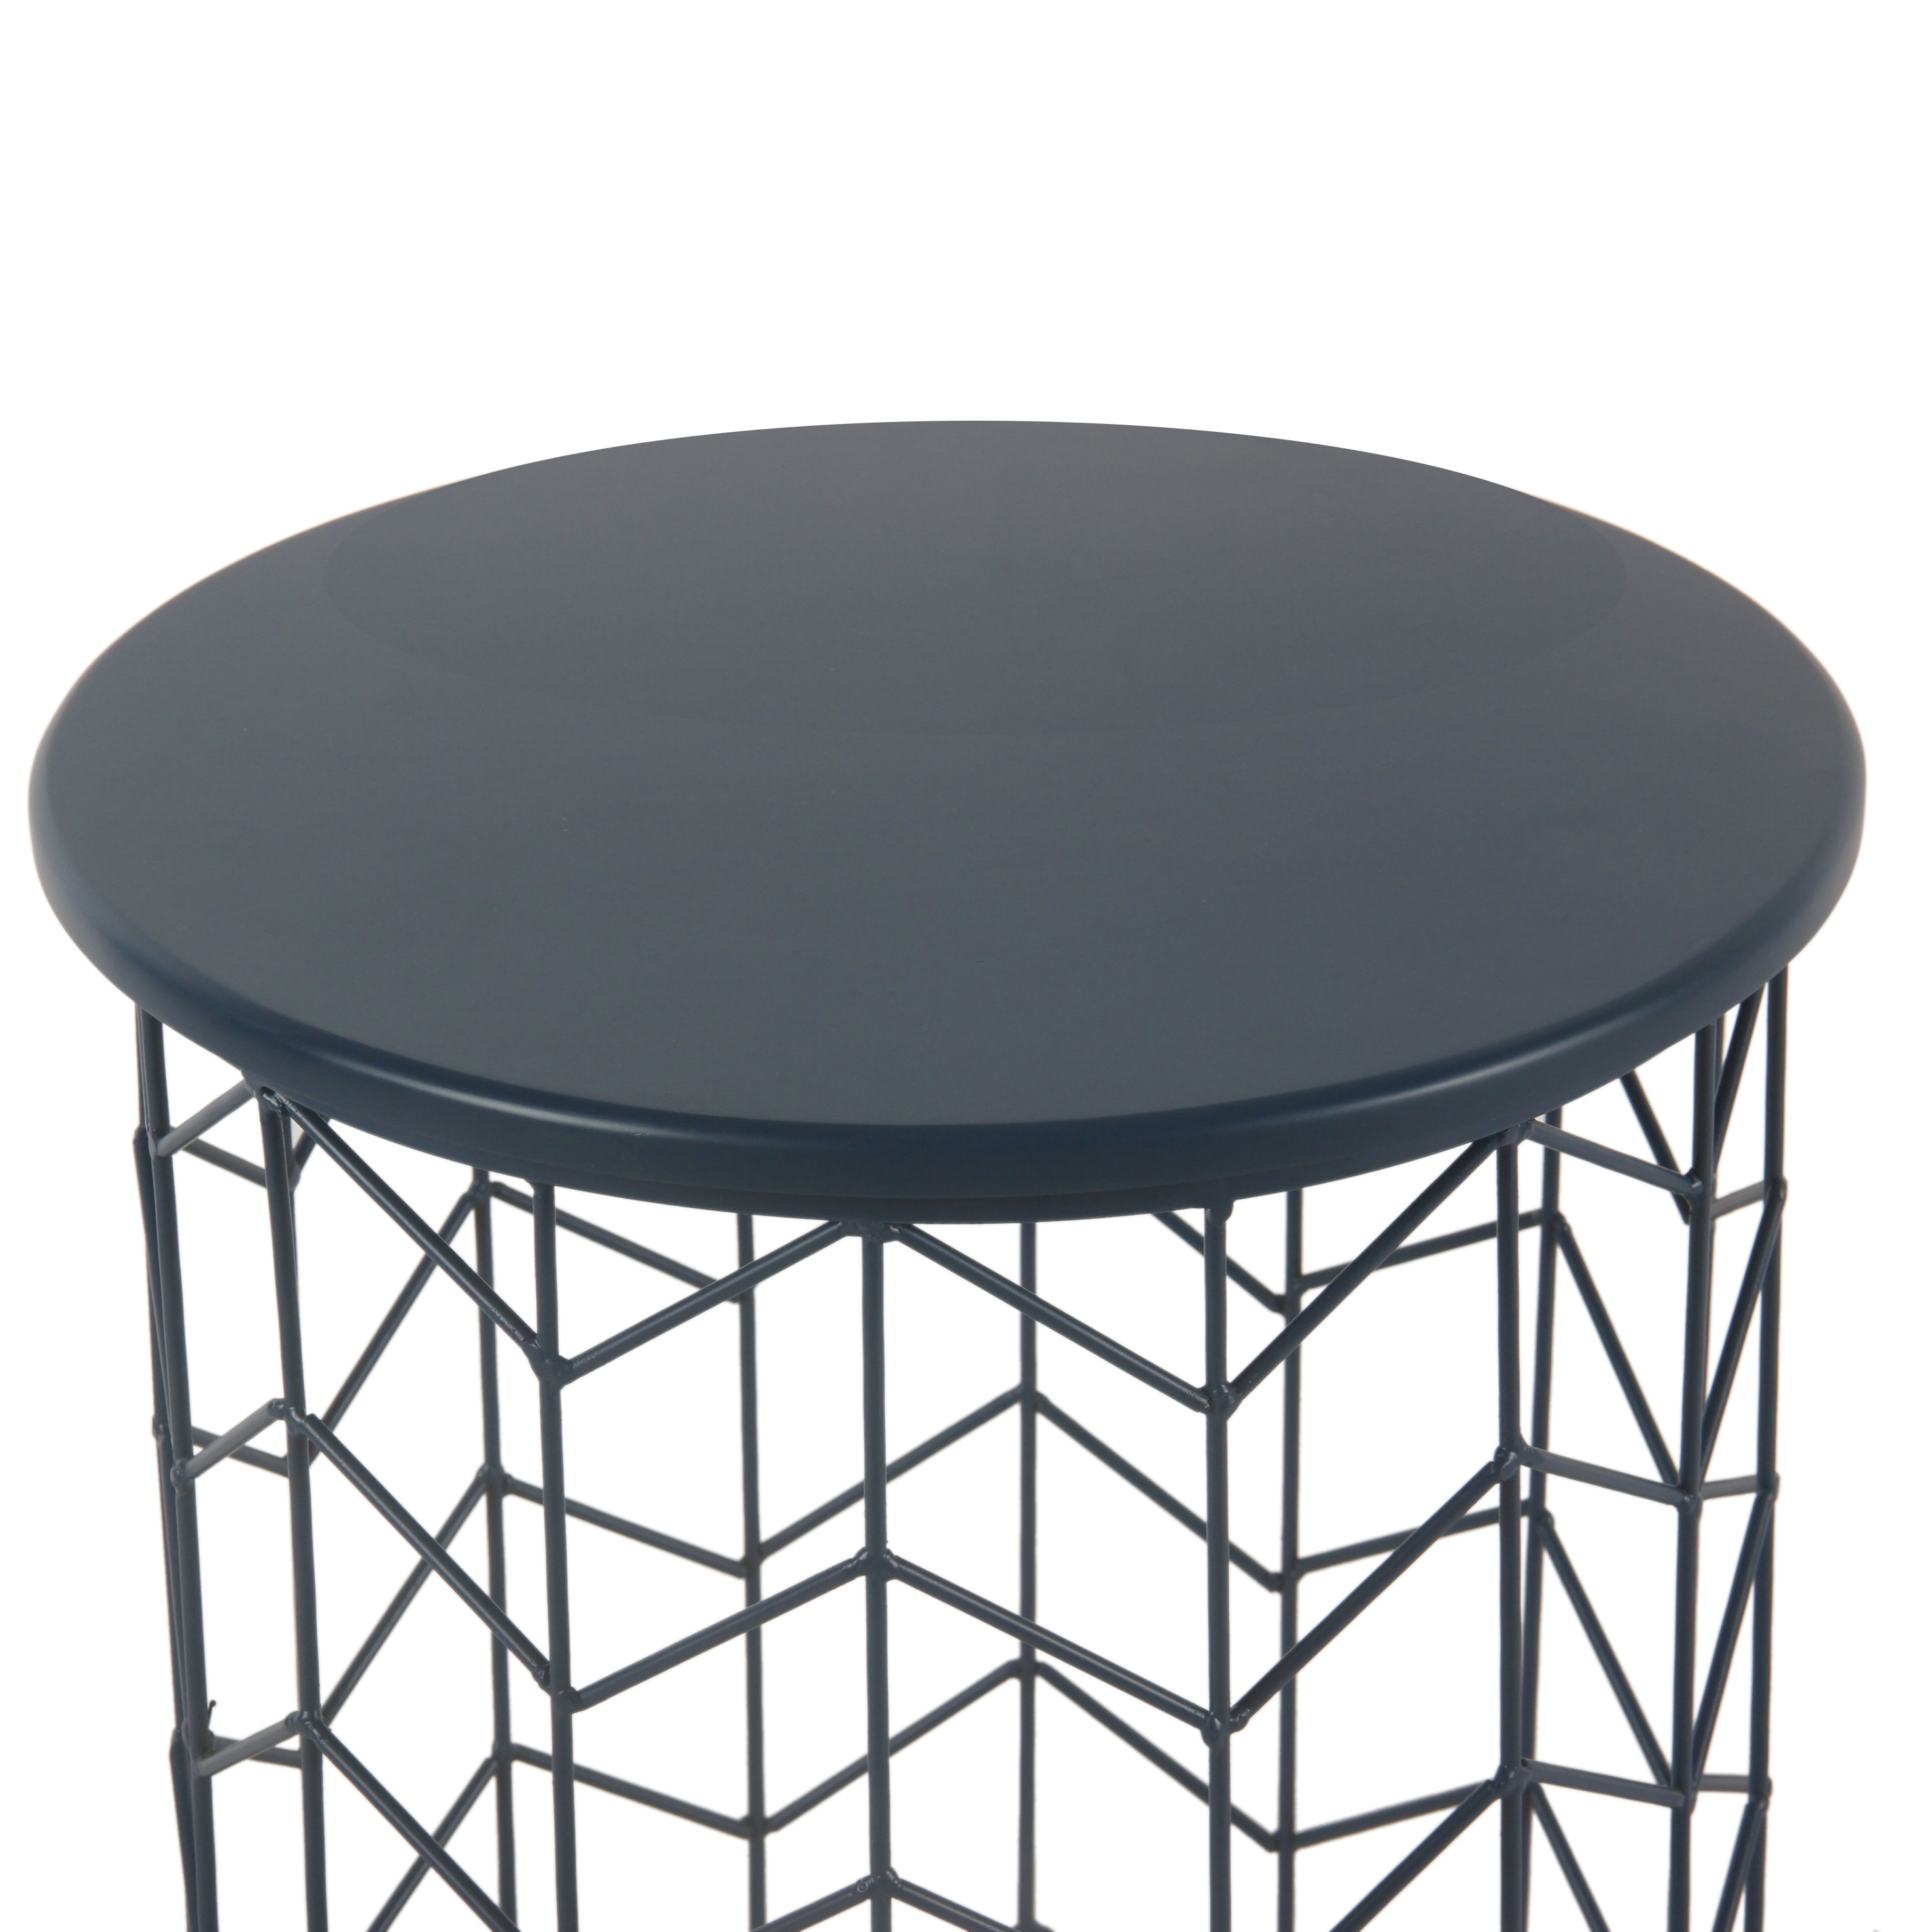 homepop modern blue metal accent table threshold transition tall round bar and chairs small couch end tables walnut side ikea dark grey pottery barn bedside storage cabinets